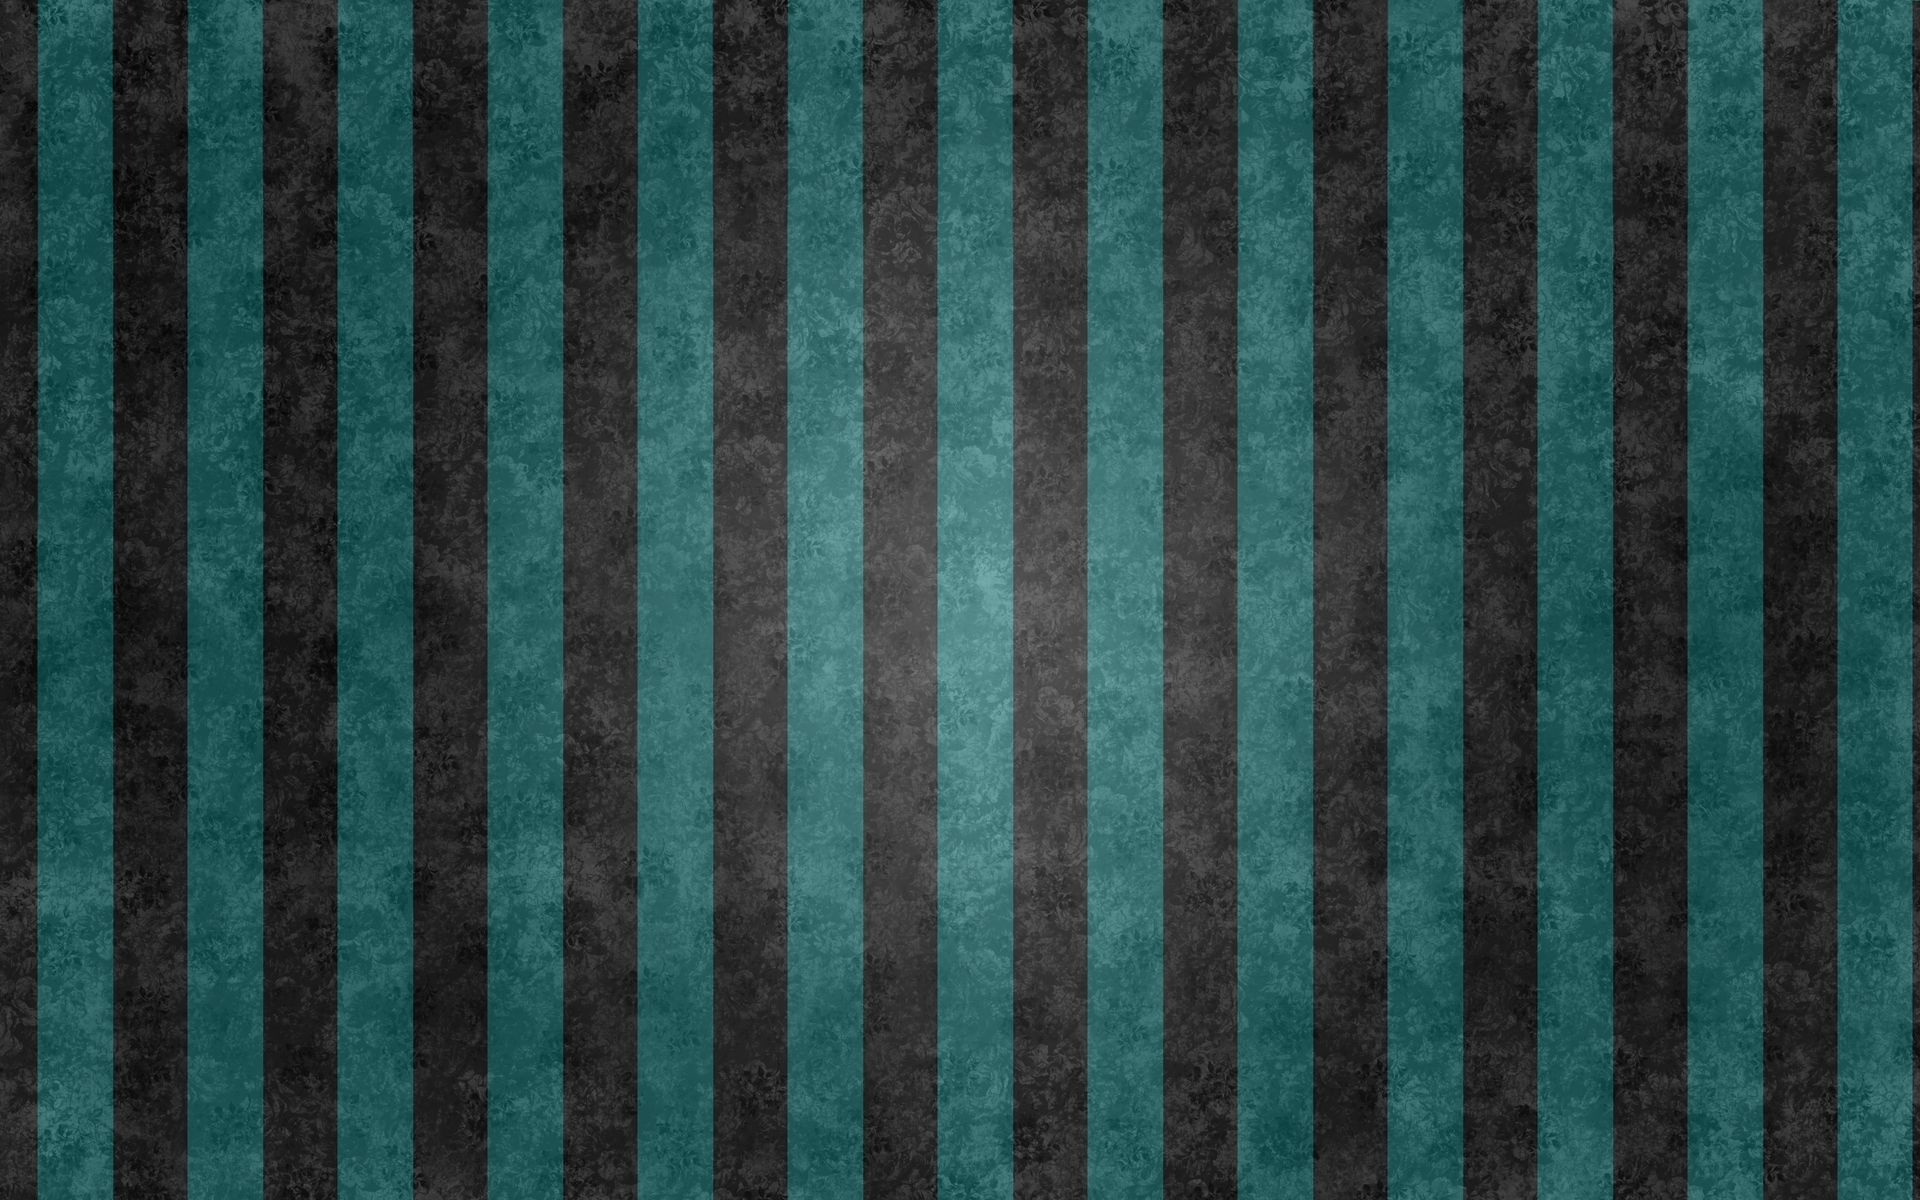 Texture Lines : Vertical lines floor texture backgrounds